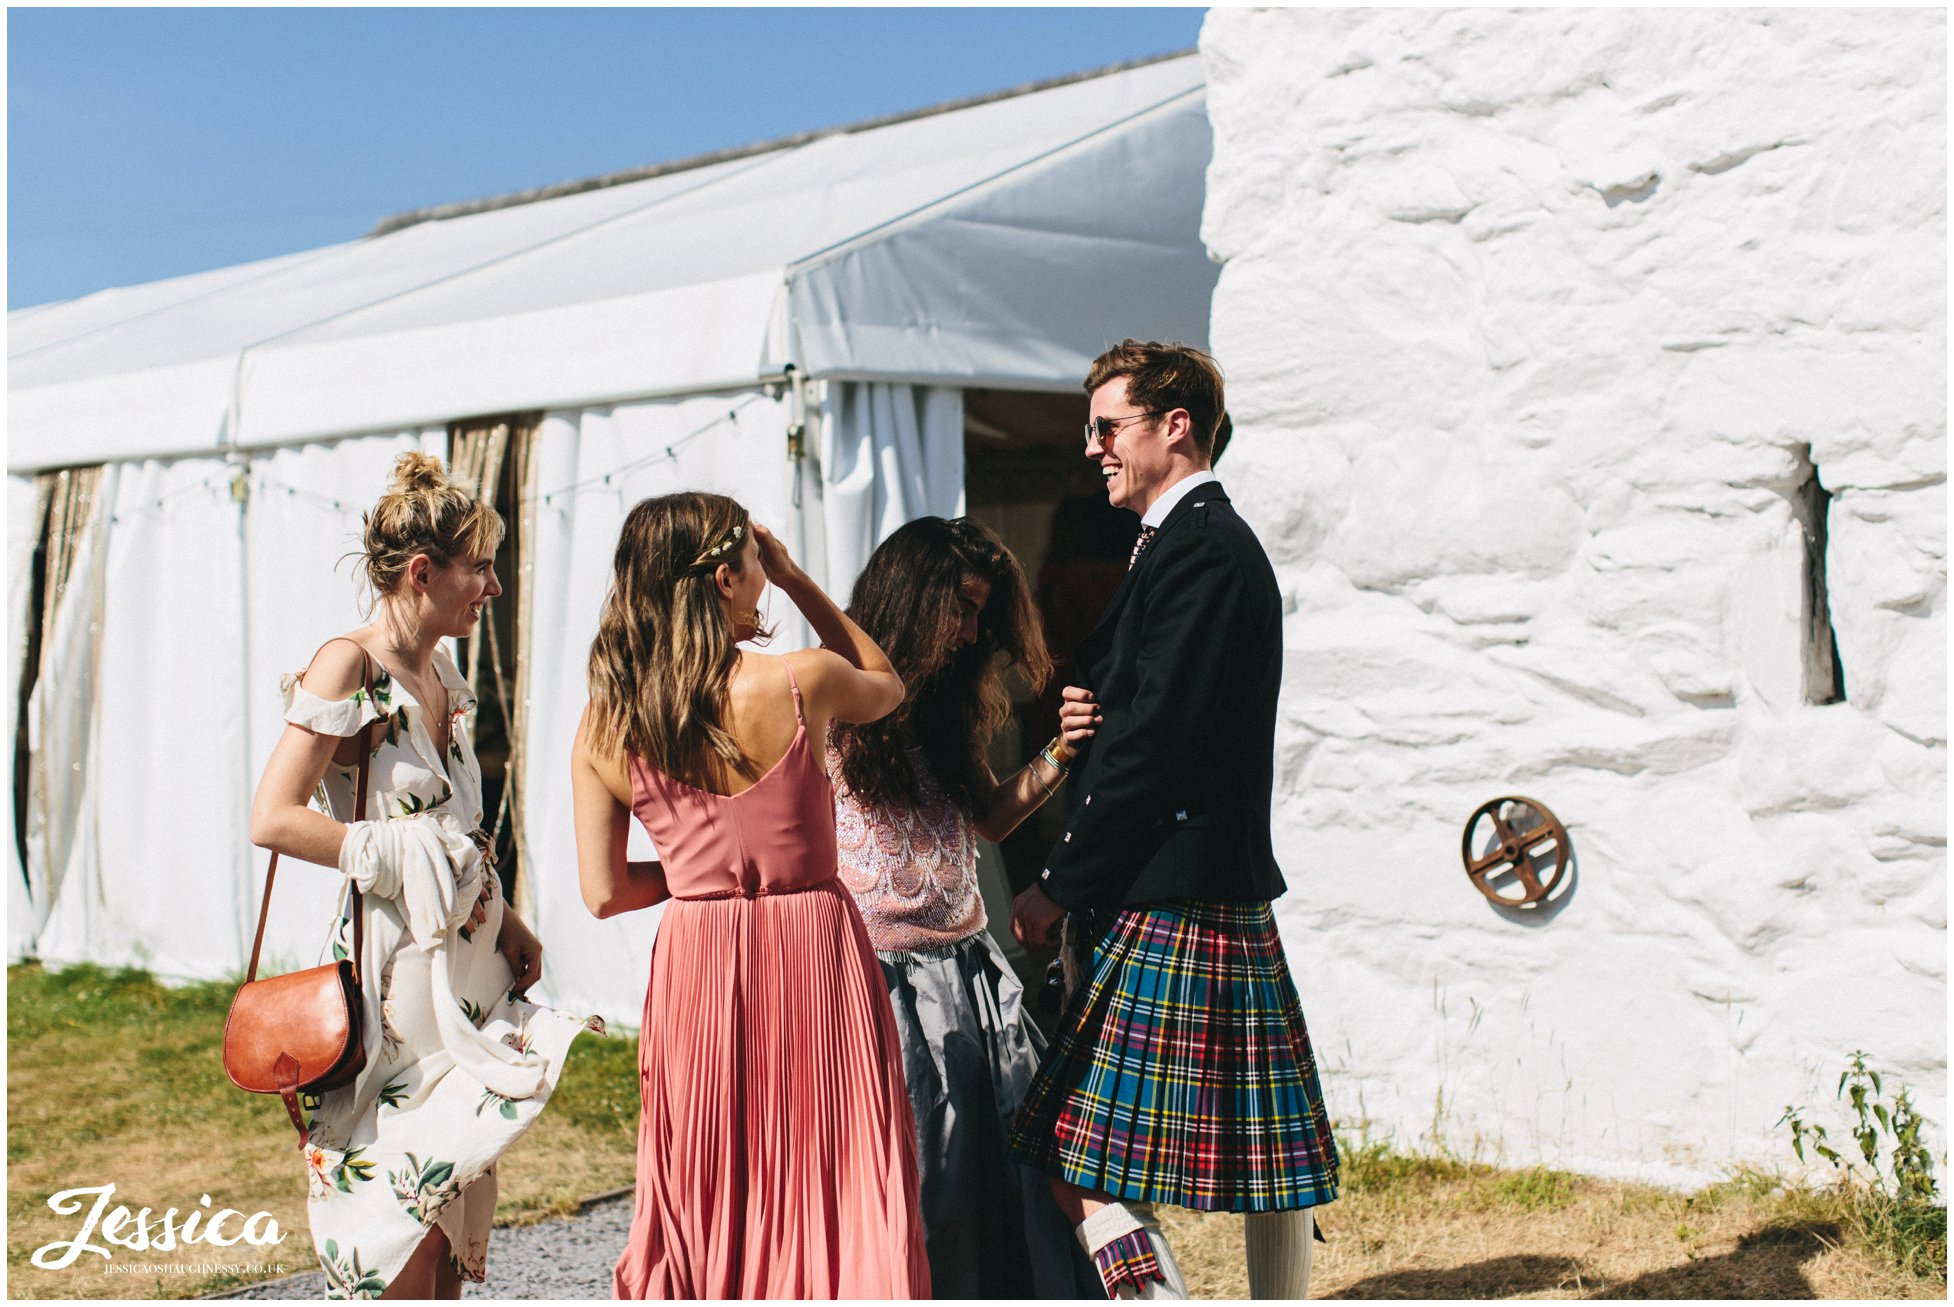 scottish guests wear kilts to the wedding